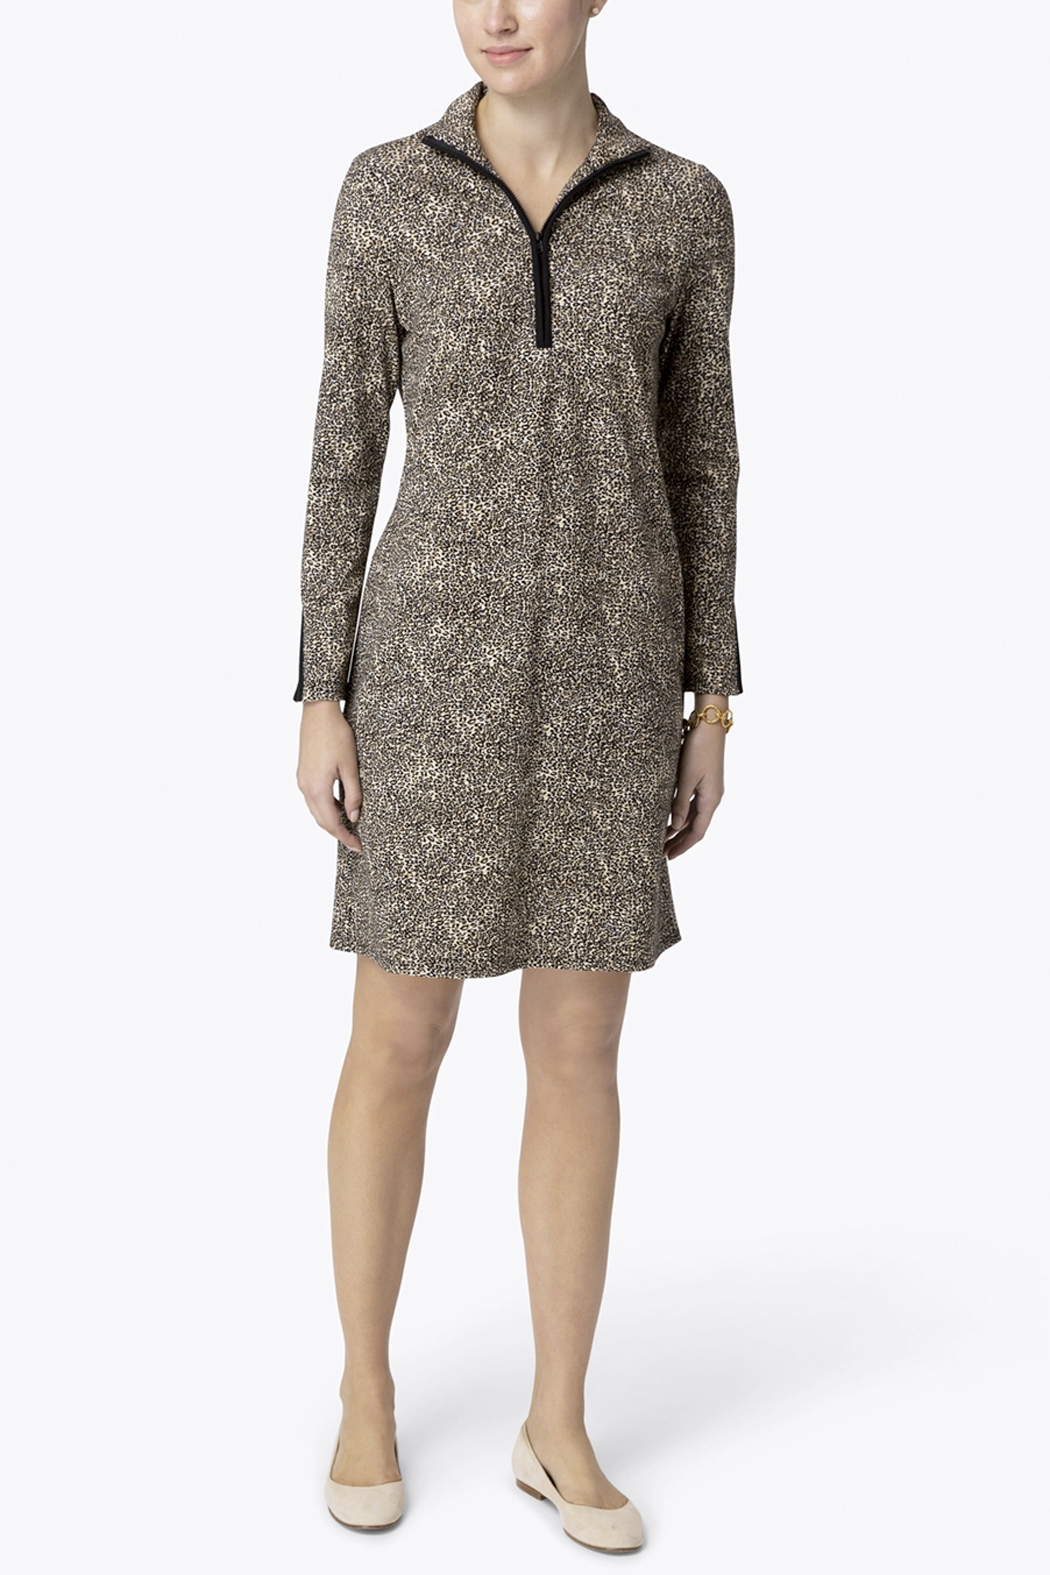 Jude Connally Anna Textured Camel/Cheetah Ponte Dress - Back Cropped Image